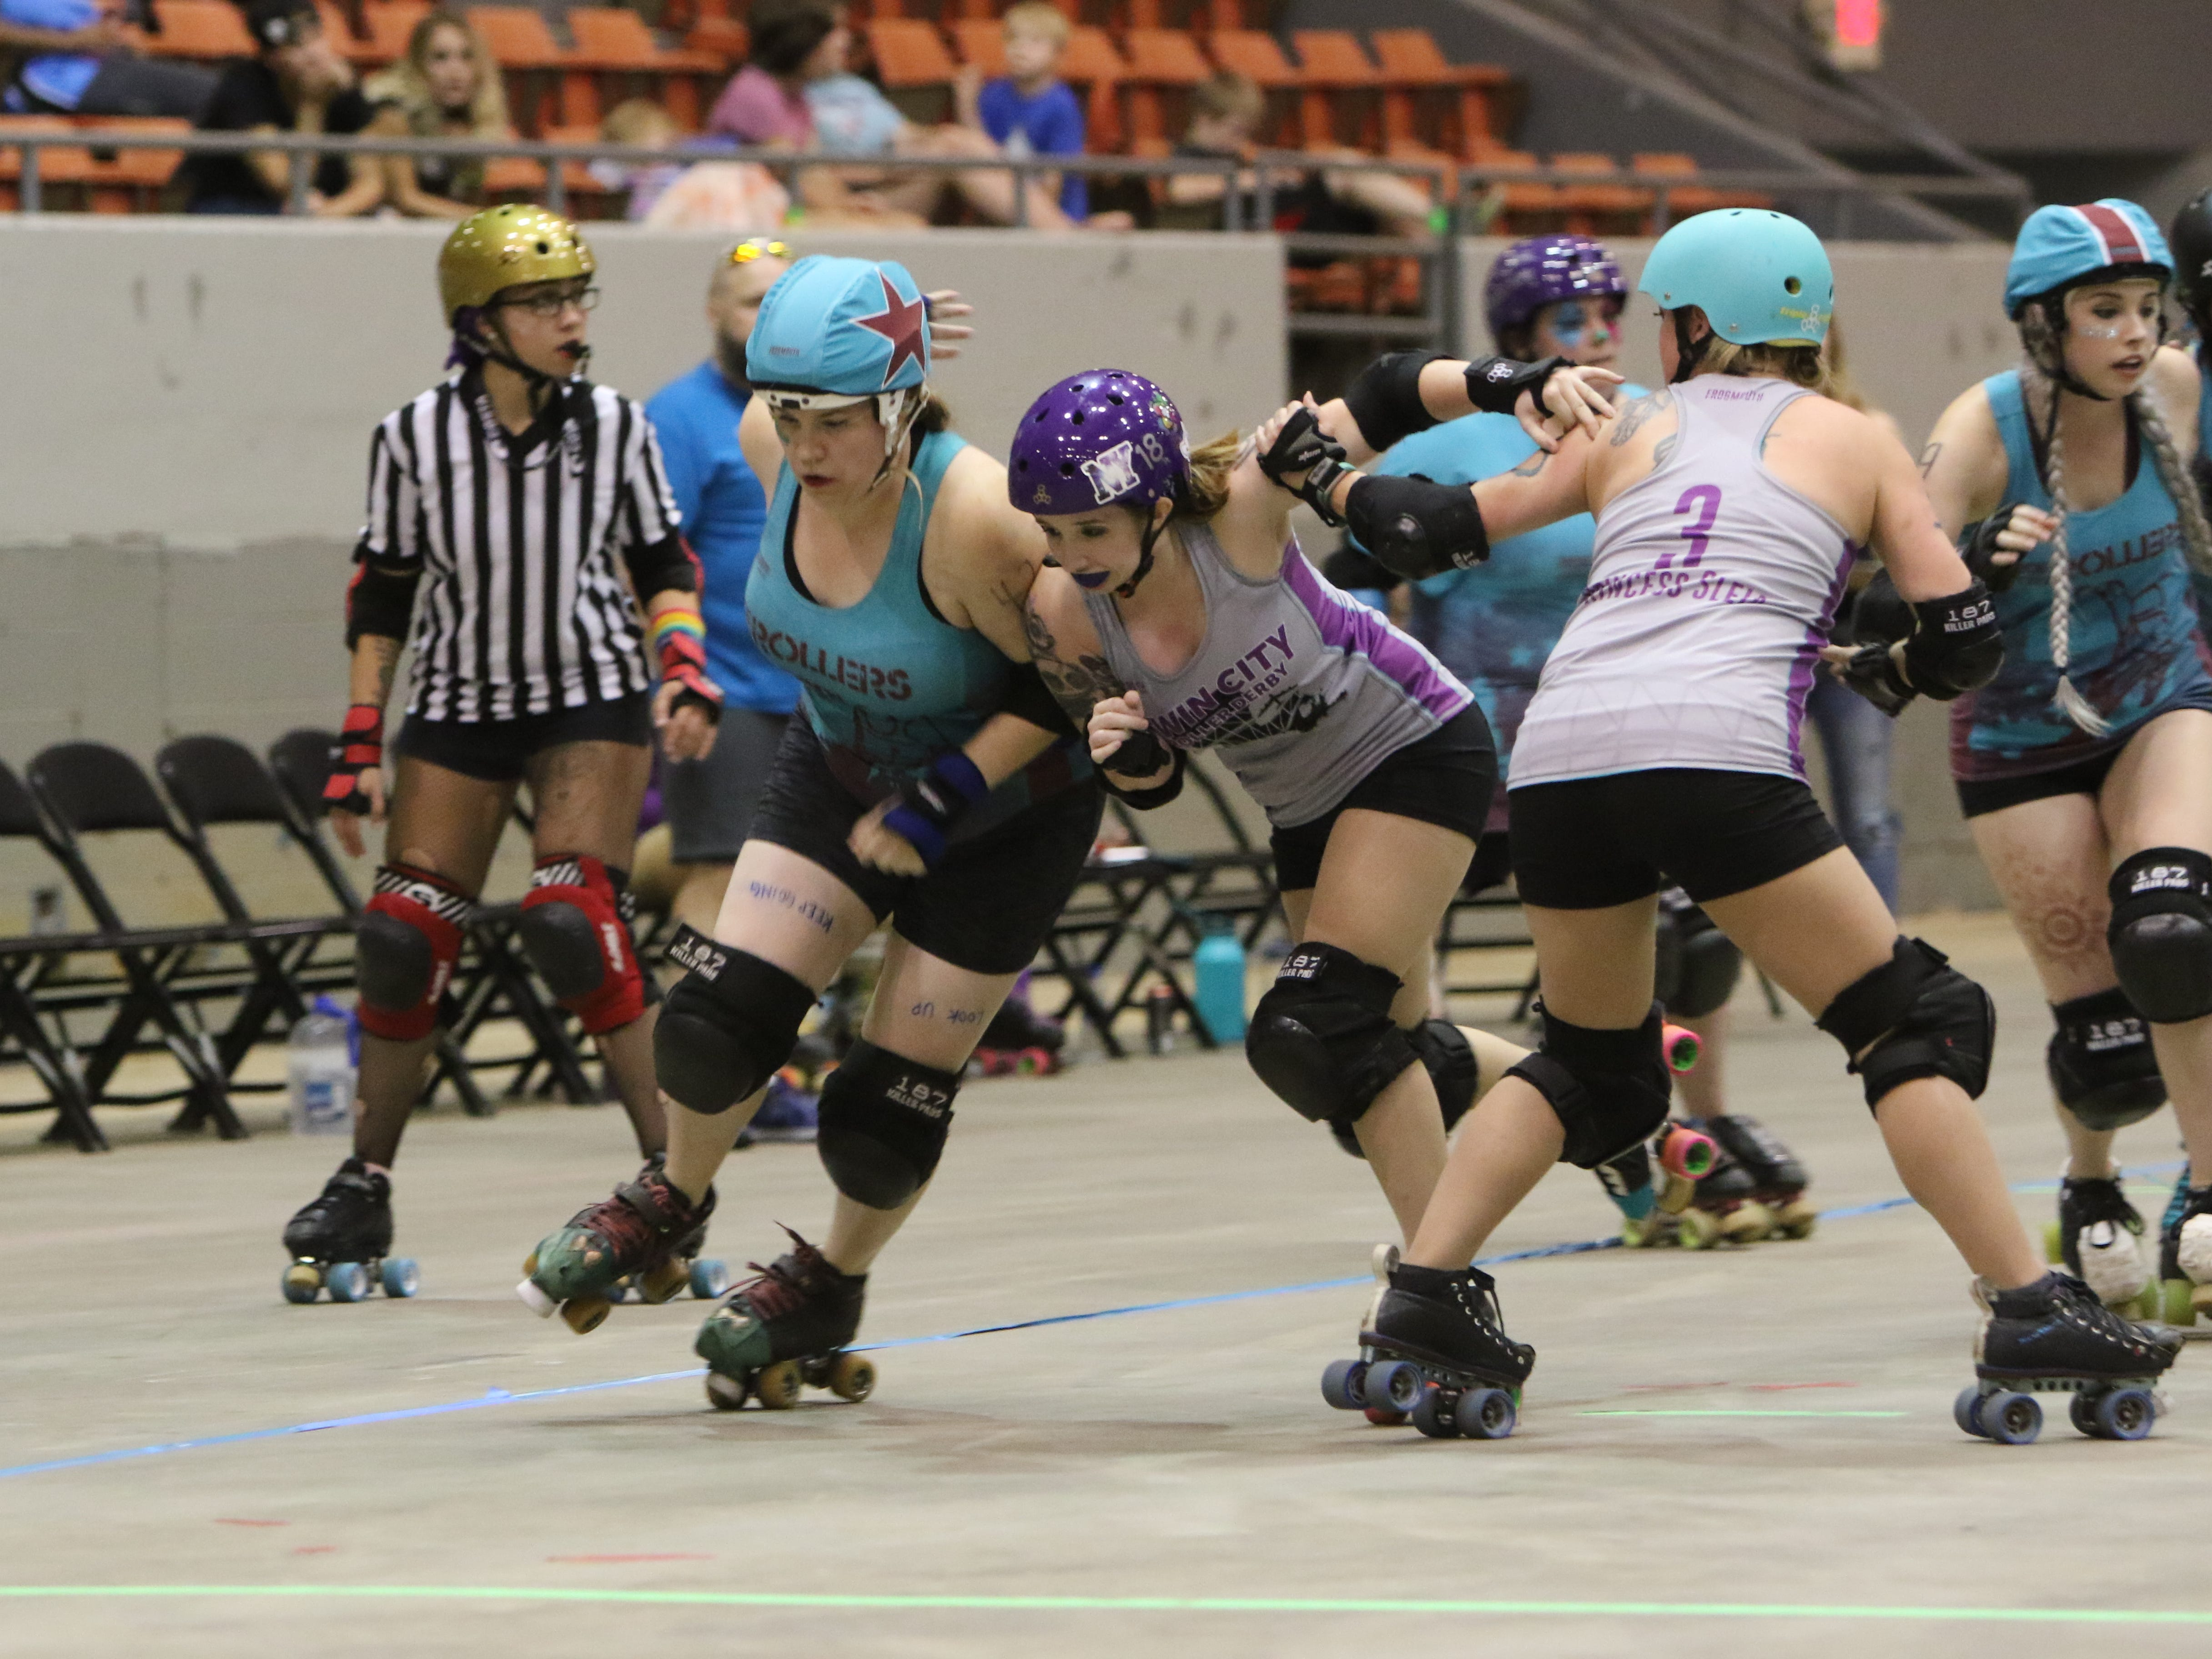 The Roe City Rollers ended their 2018 Home season with a double header playing Third Coast Roller Derby from Texas and Twin City Roller Derby from Shreveport on Saturday, September 15, in the Monroe Civic Center.